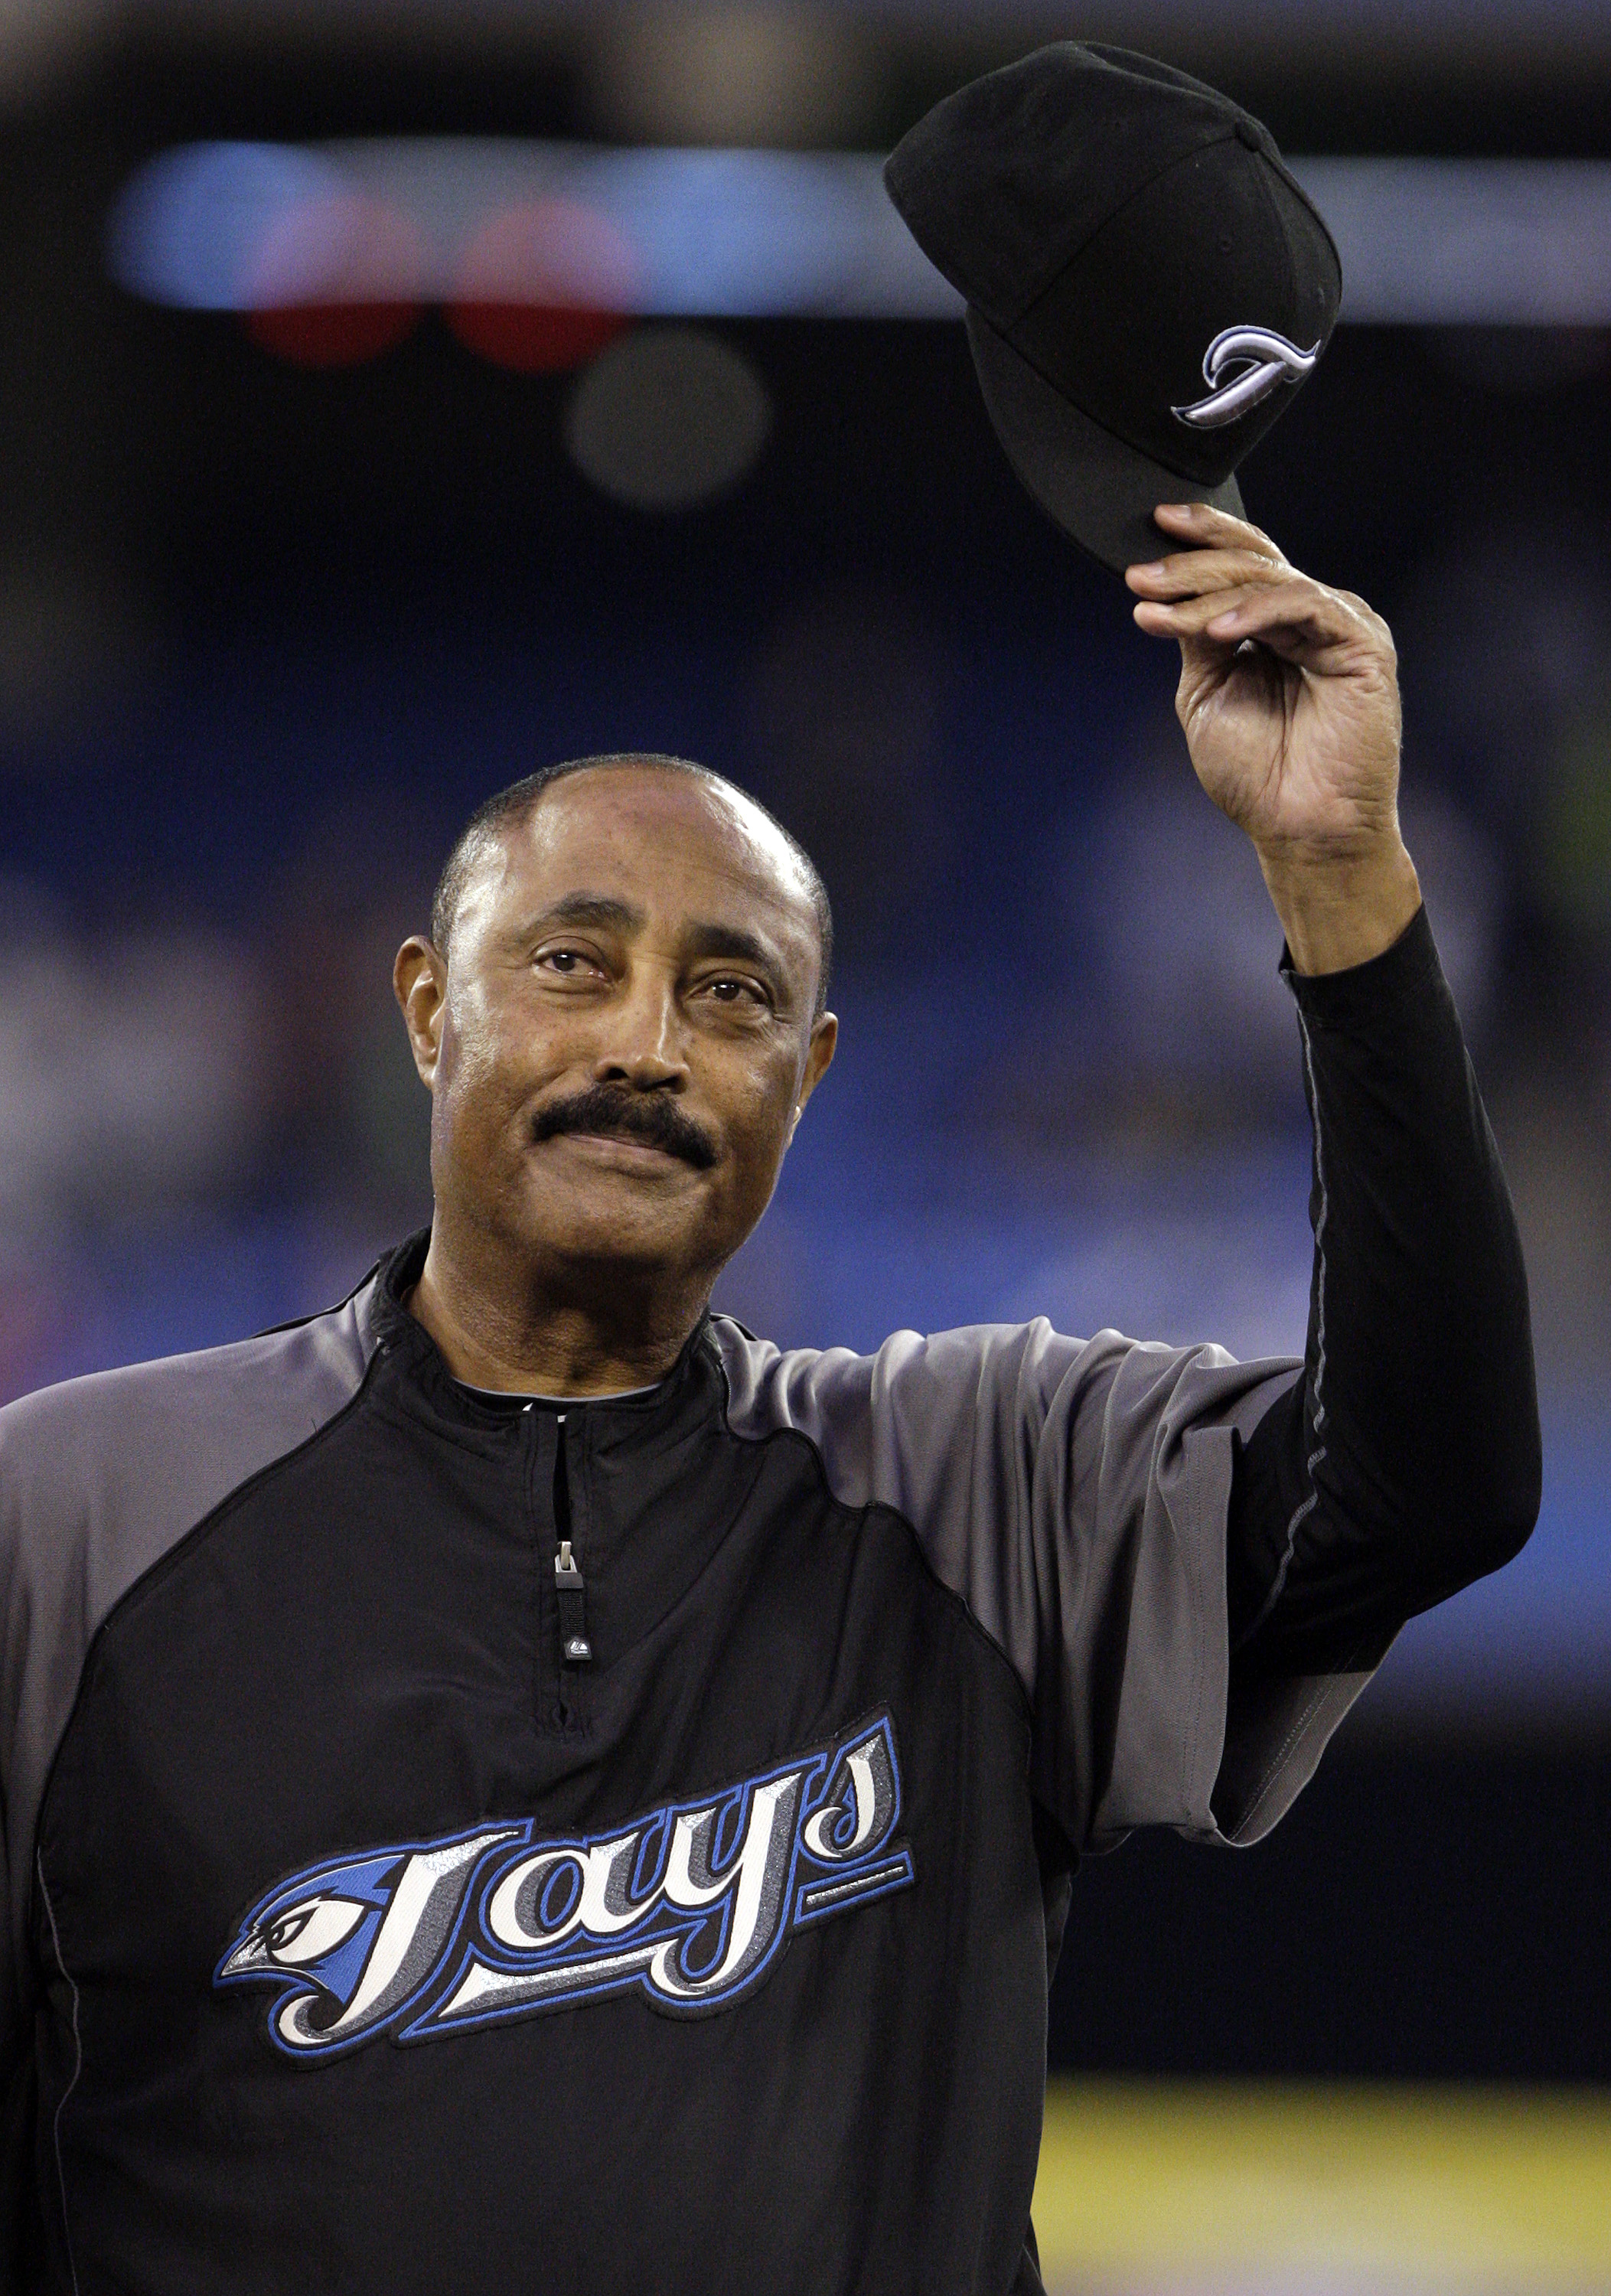 TORONTO, ON - SEPTEMBER 29: Cito Gaston tips his hat during a pre-game ceremony for retiring Manager Cito Gaston of the Toronto Blue Jays as they play the New York Yankees during a MLB game at the Rogers Centre September 29, 2010 in Toronto, Ontario, Cana